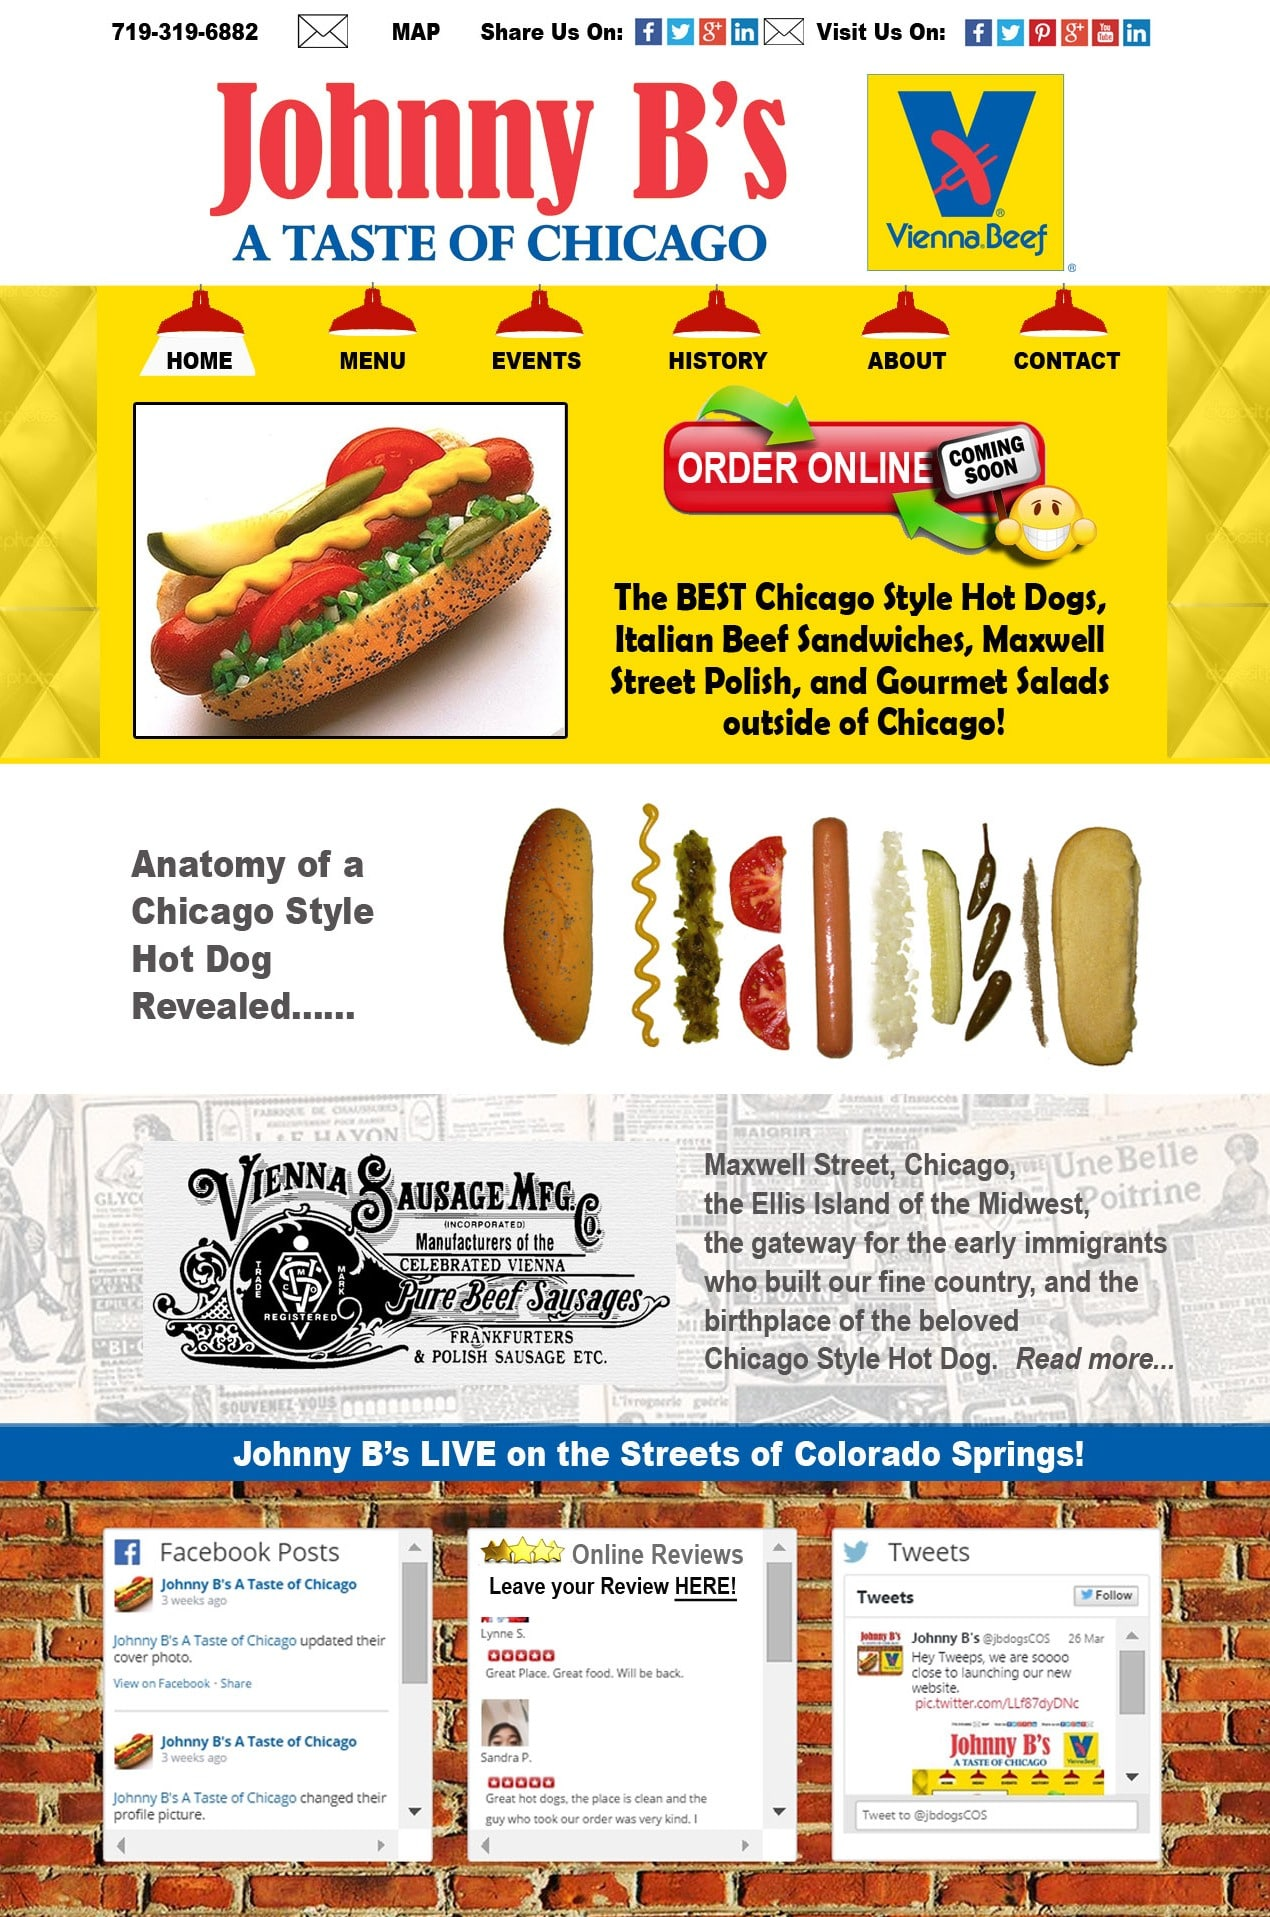 Johnny B's Chicago Style Hot Dogs